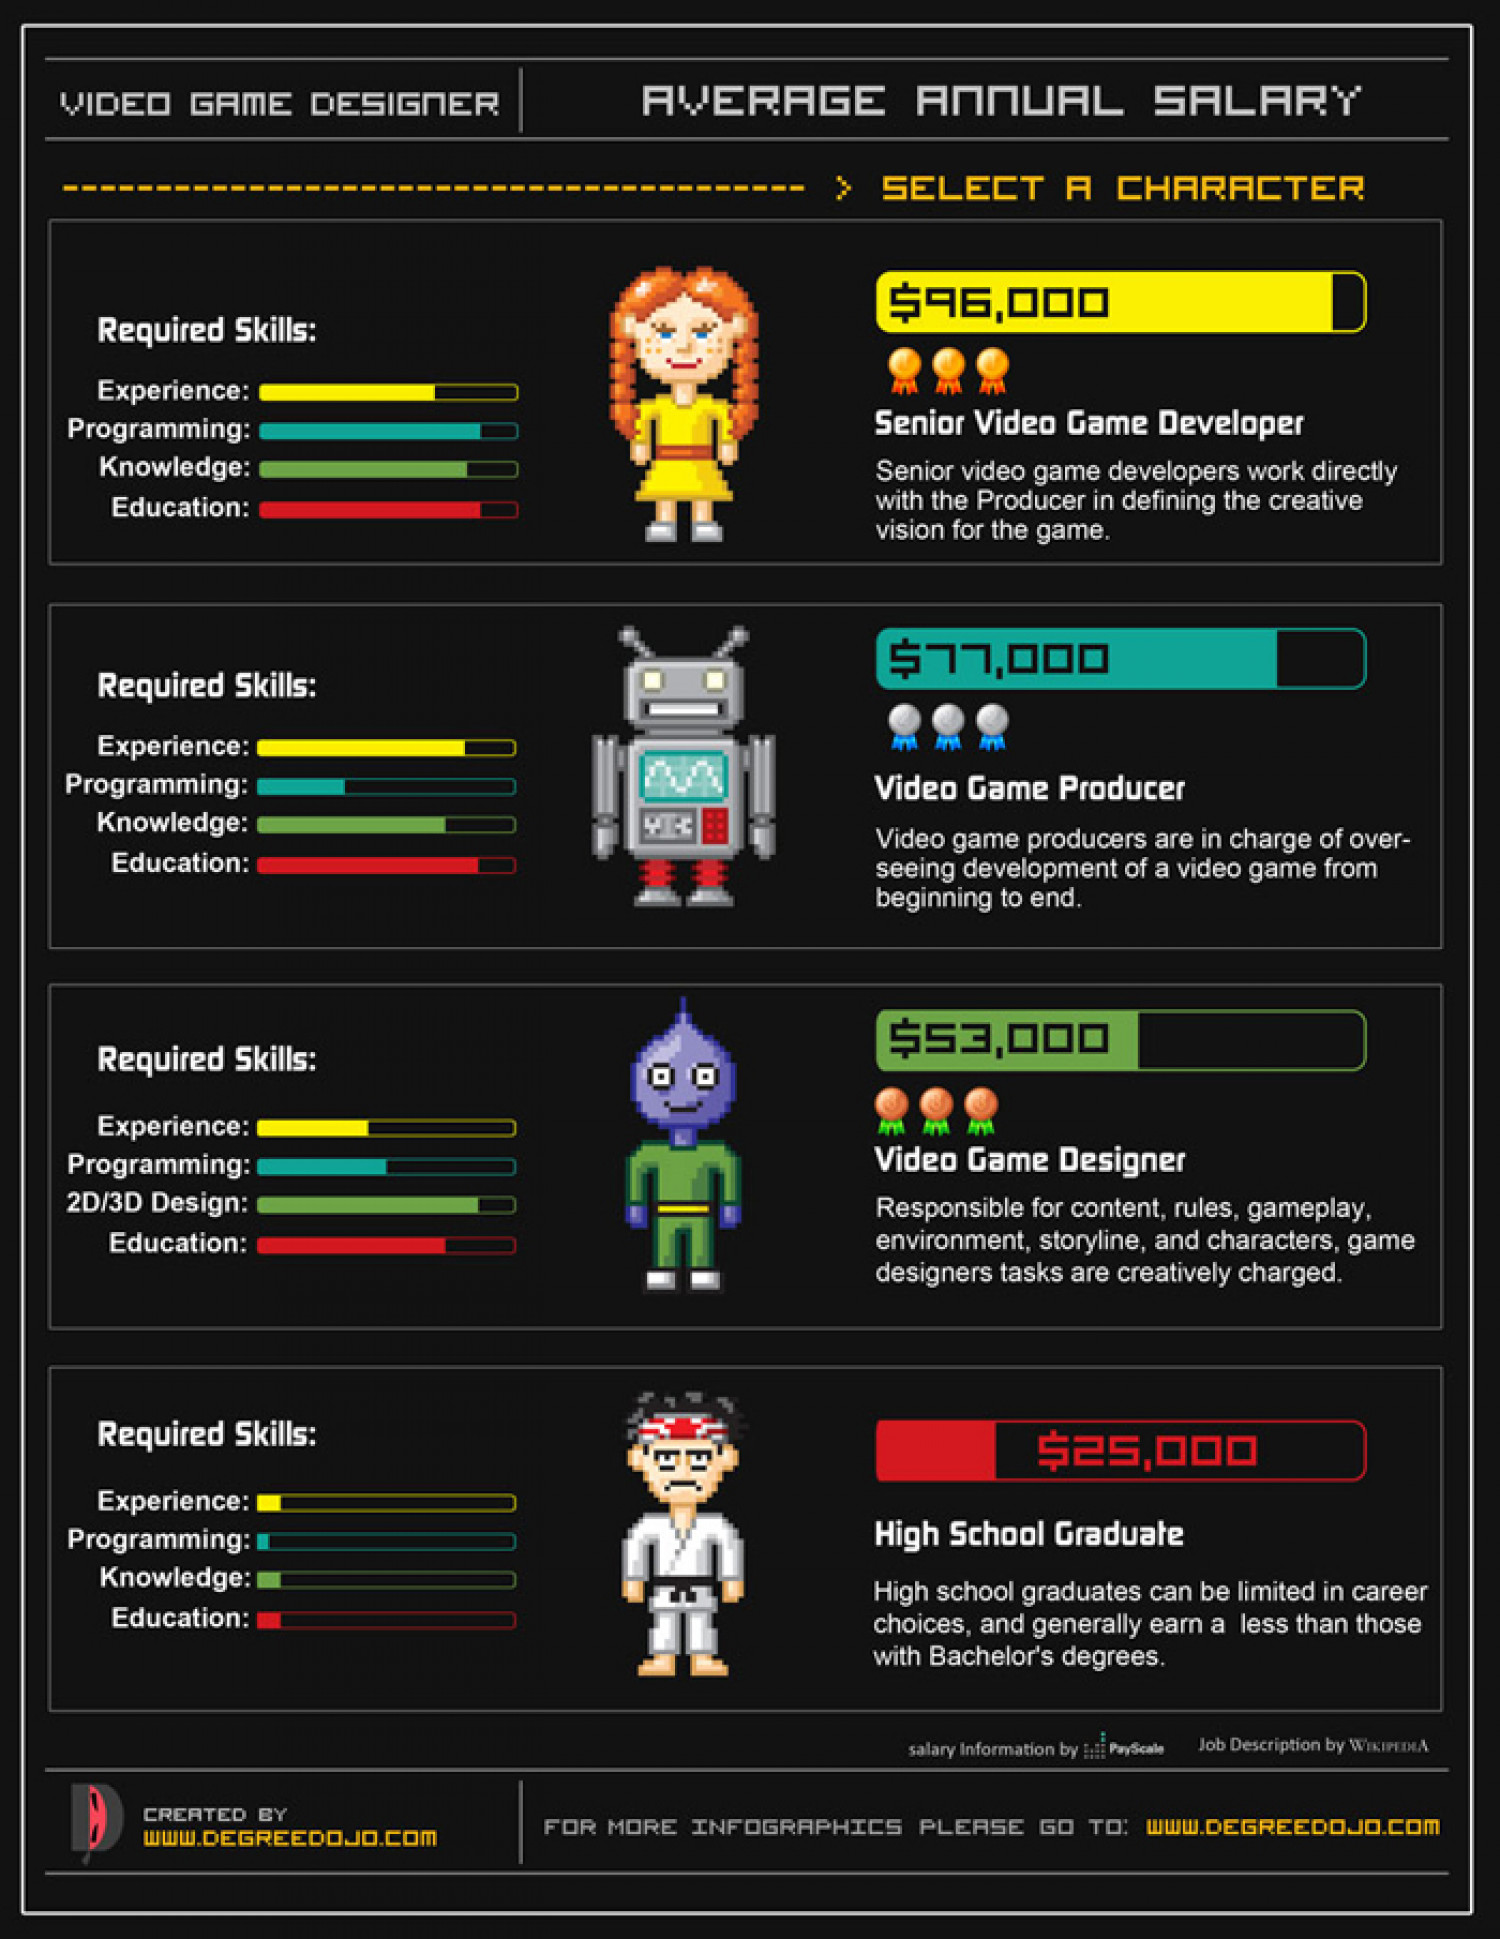 The Creative Group Graphic Designer Salary